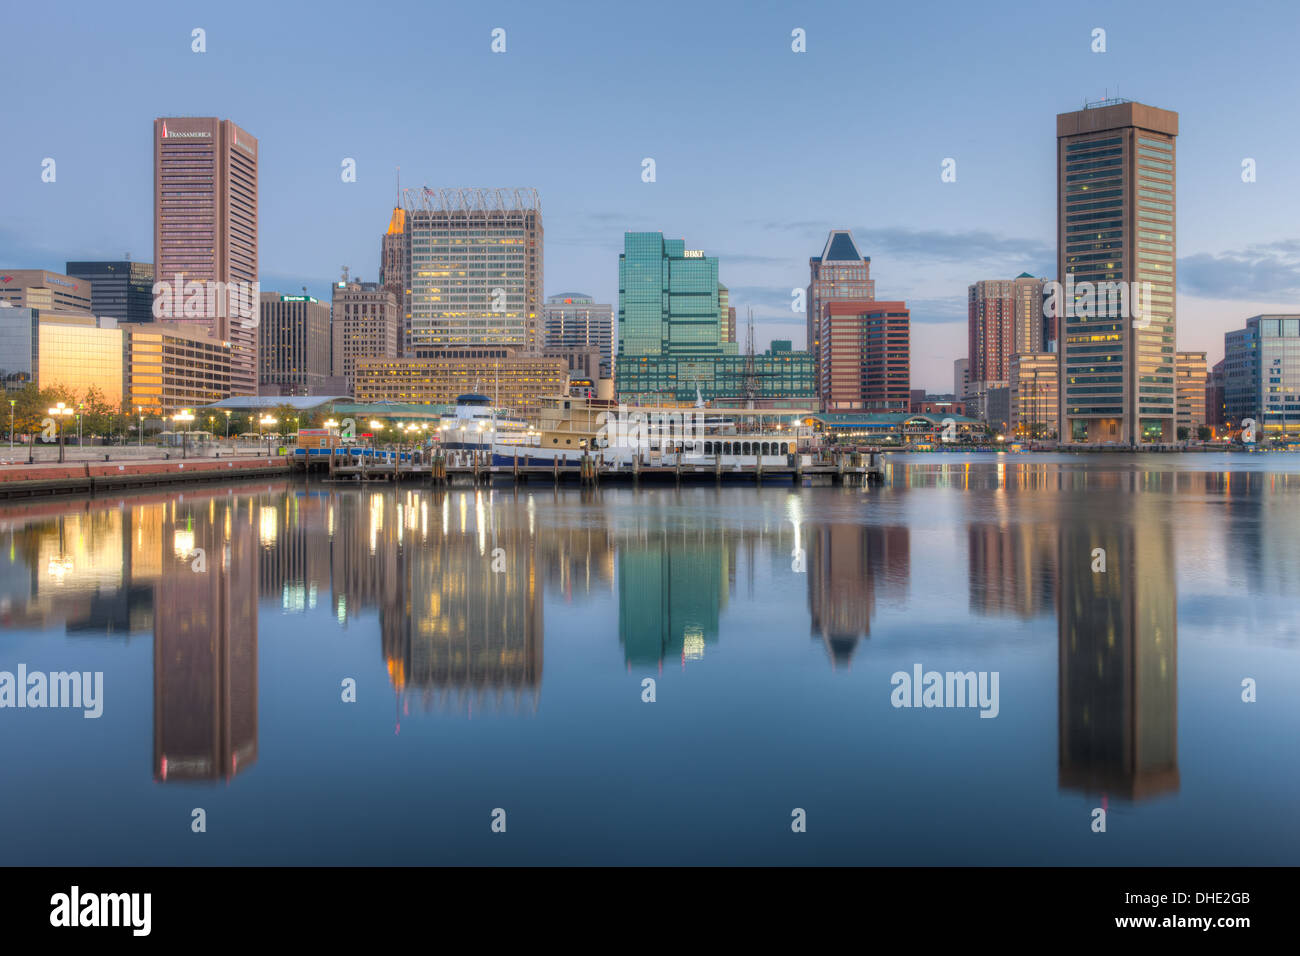 Baltimore skyline at dawn, including the Transamerica Tower and World Trade Center, reflected in the waters of the Stock Photo